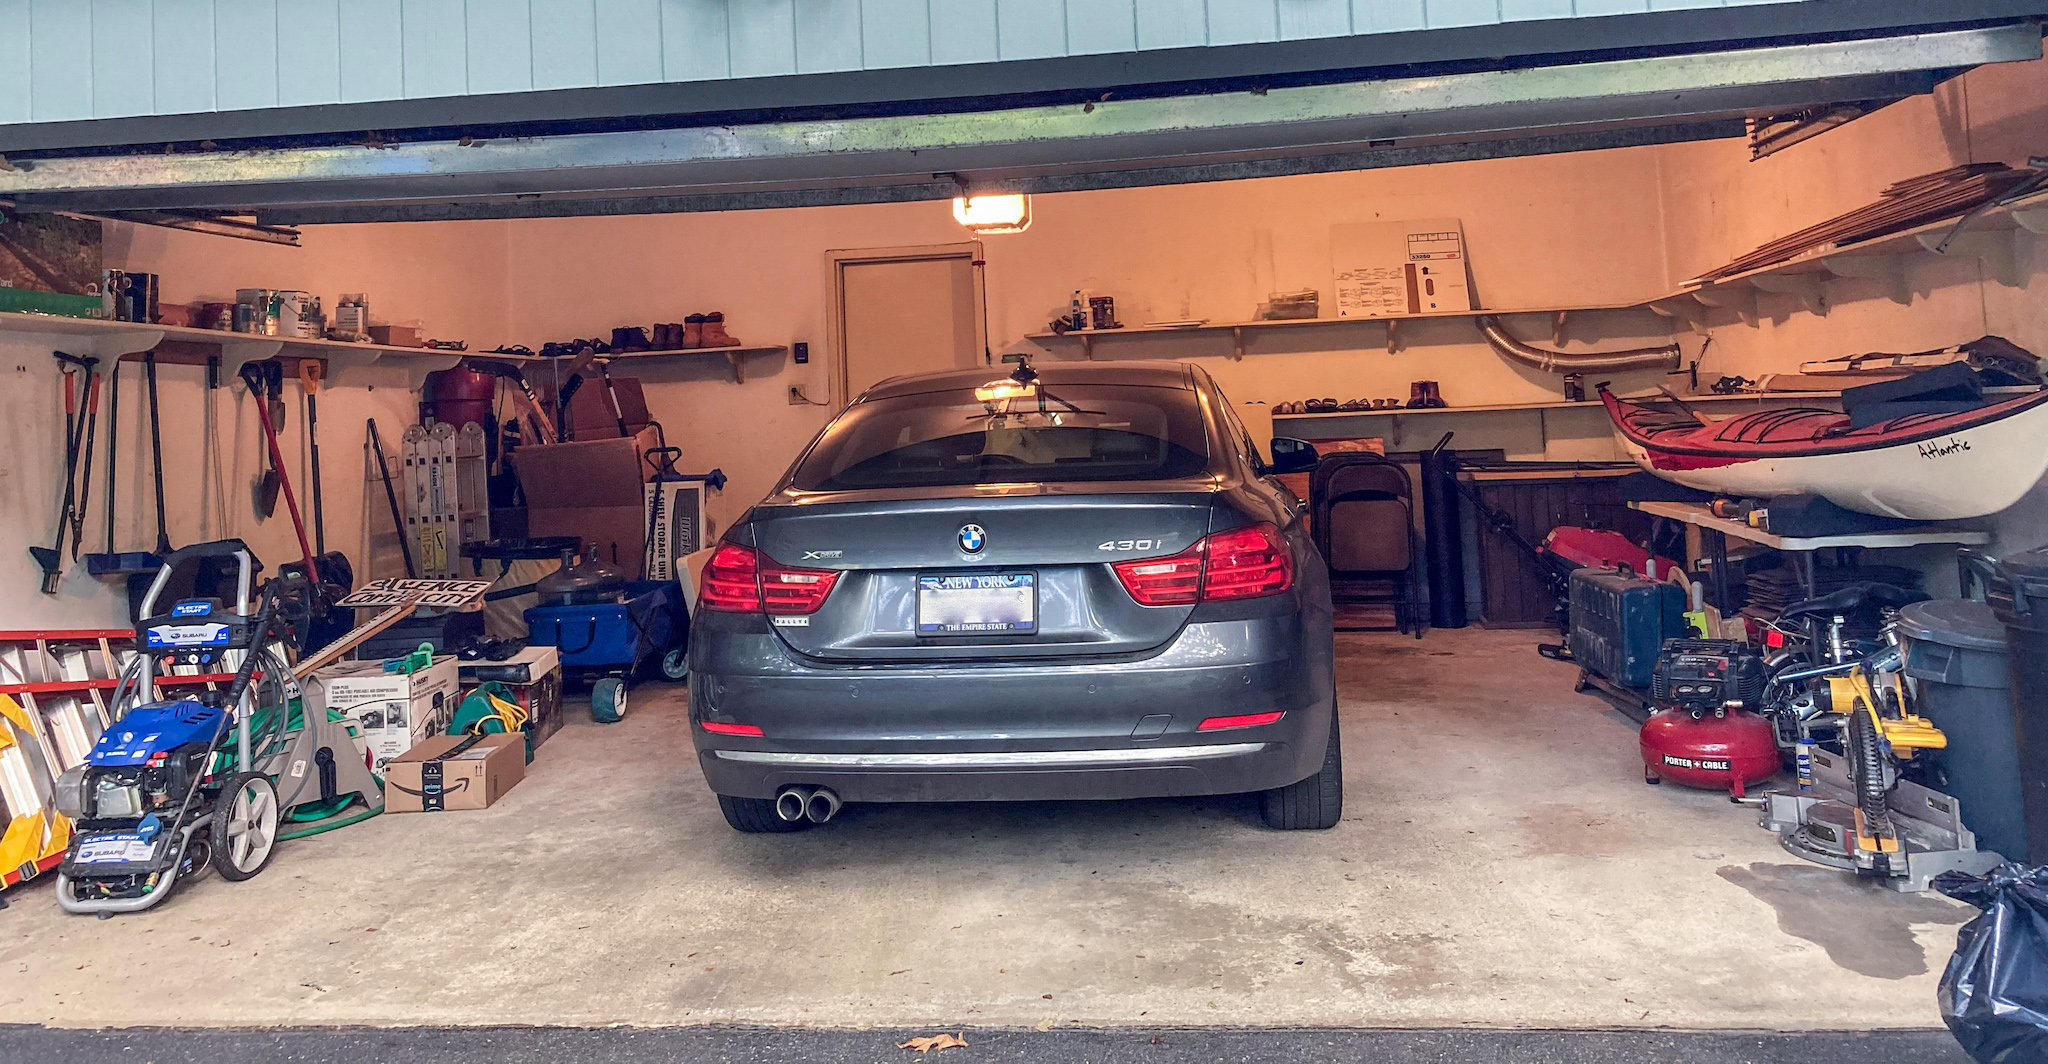 Garage before remodeling with tools and stuff strewn about